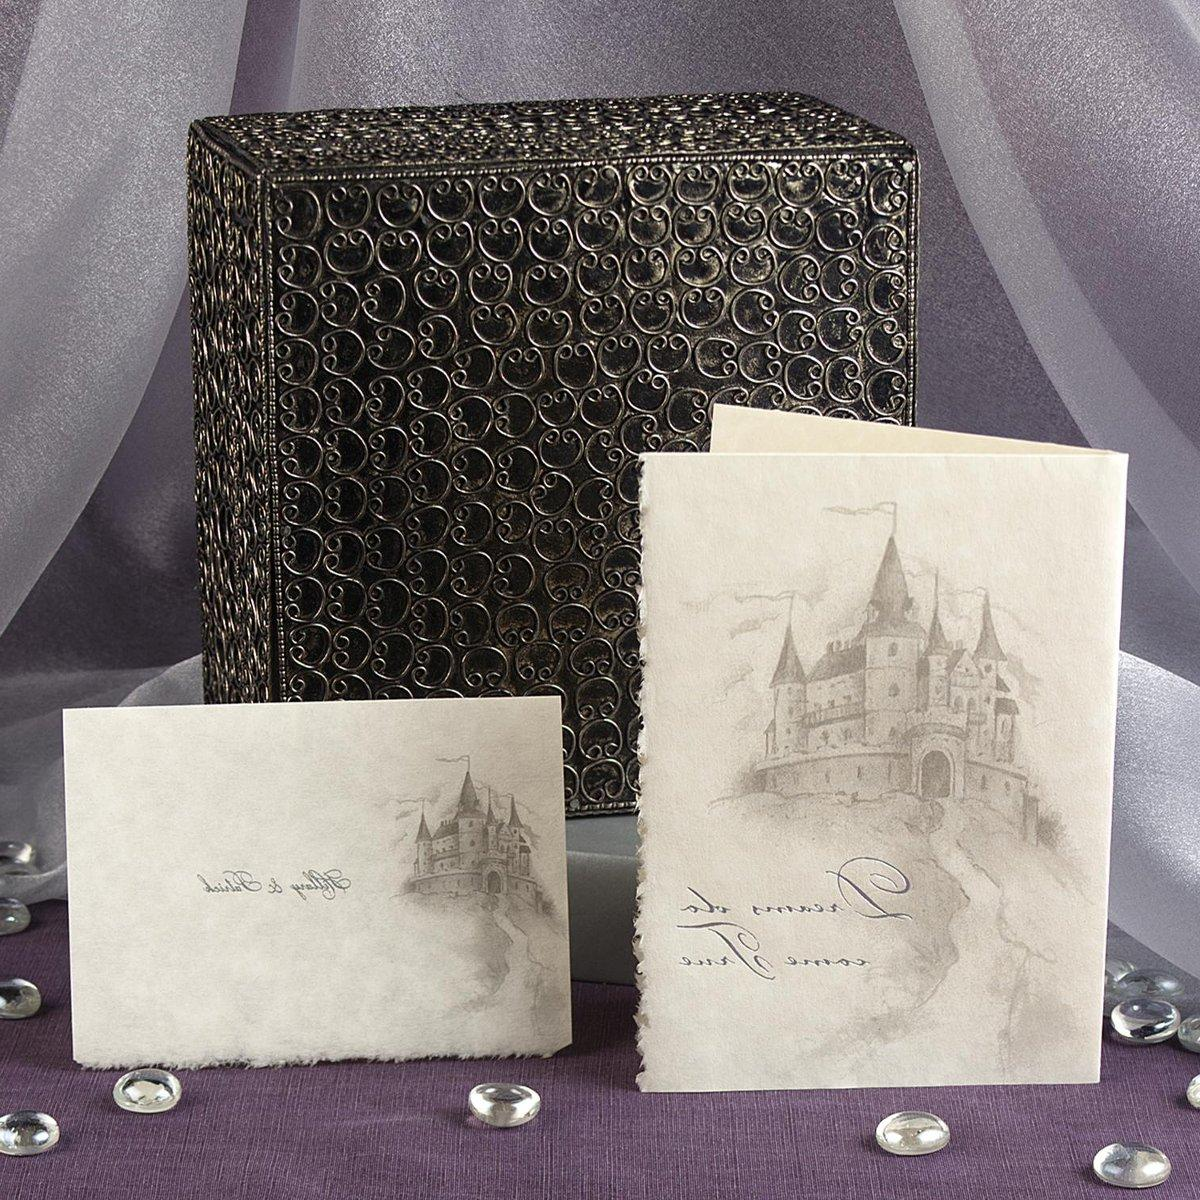 Dreams Do Come True Wedding Invitations - A magical castle appears as a